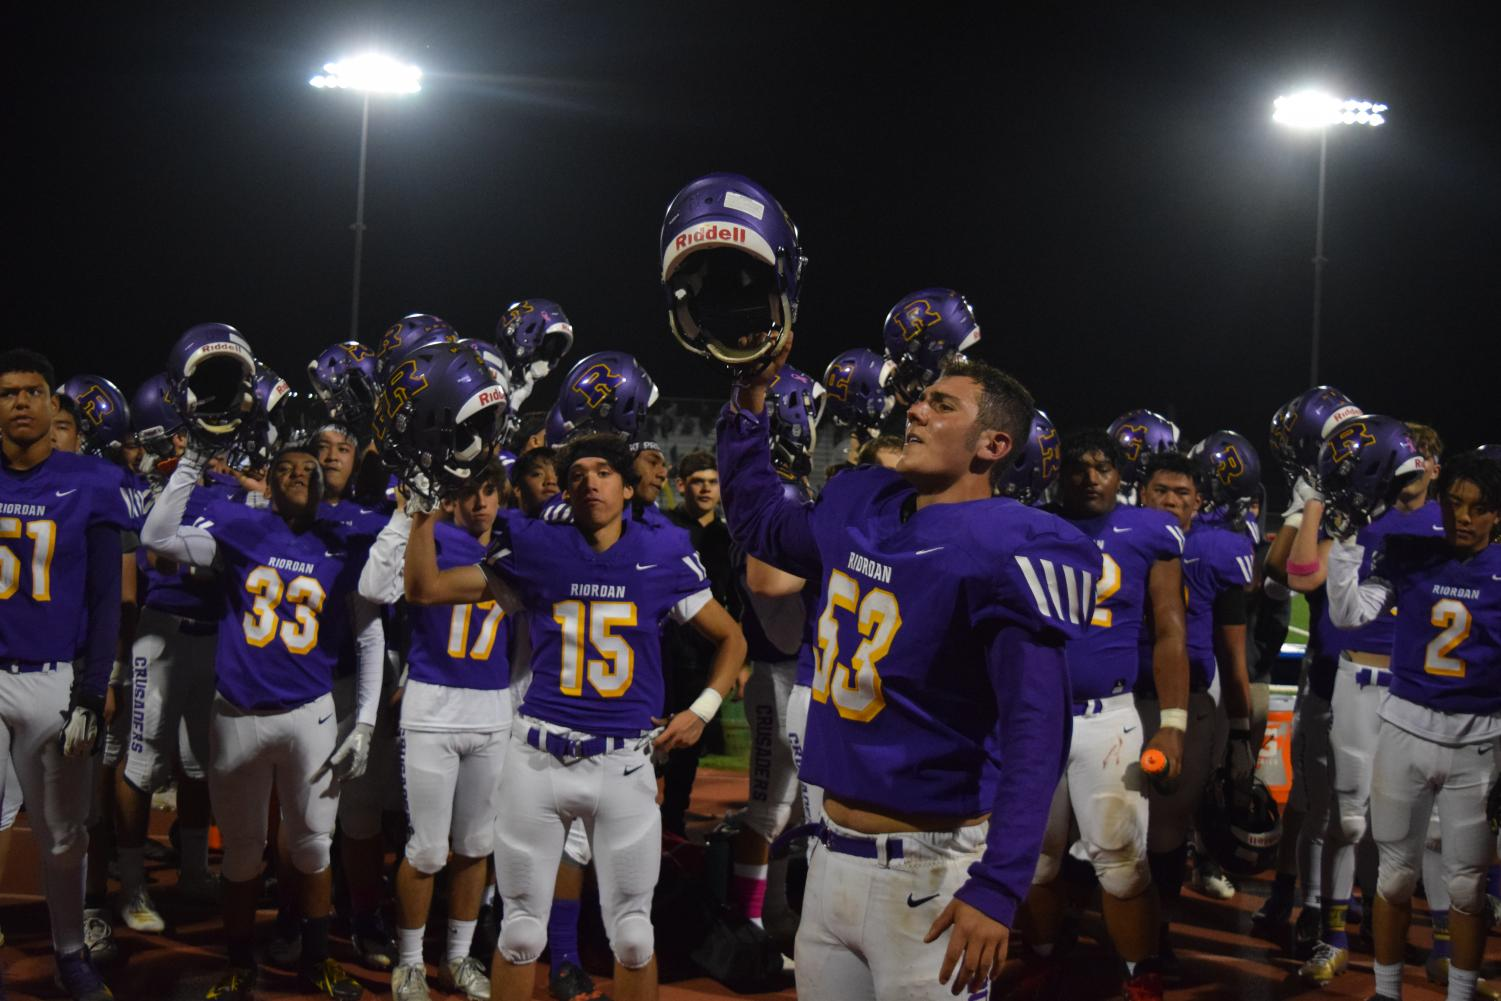 Members of the varsity football team sing the alma mater after a recent game.